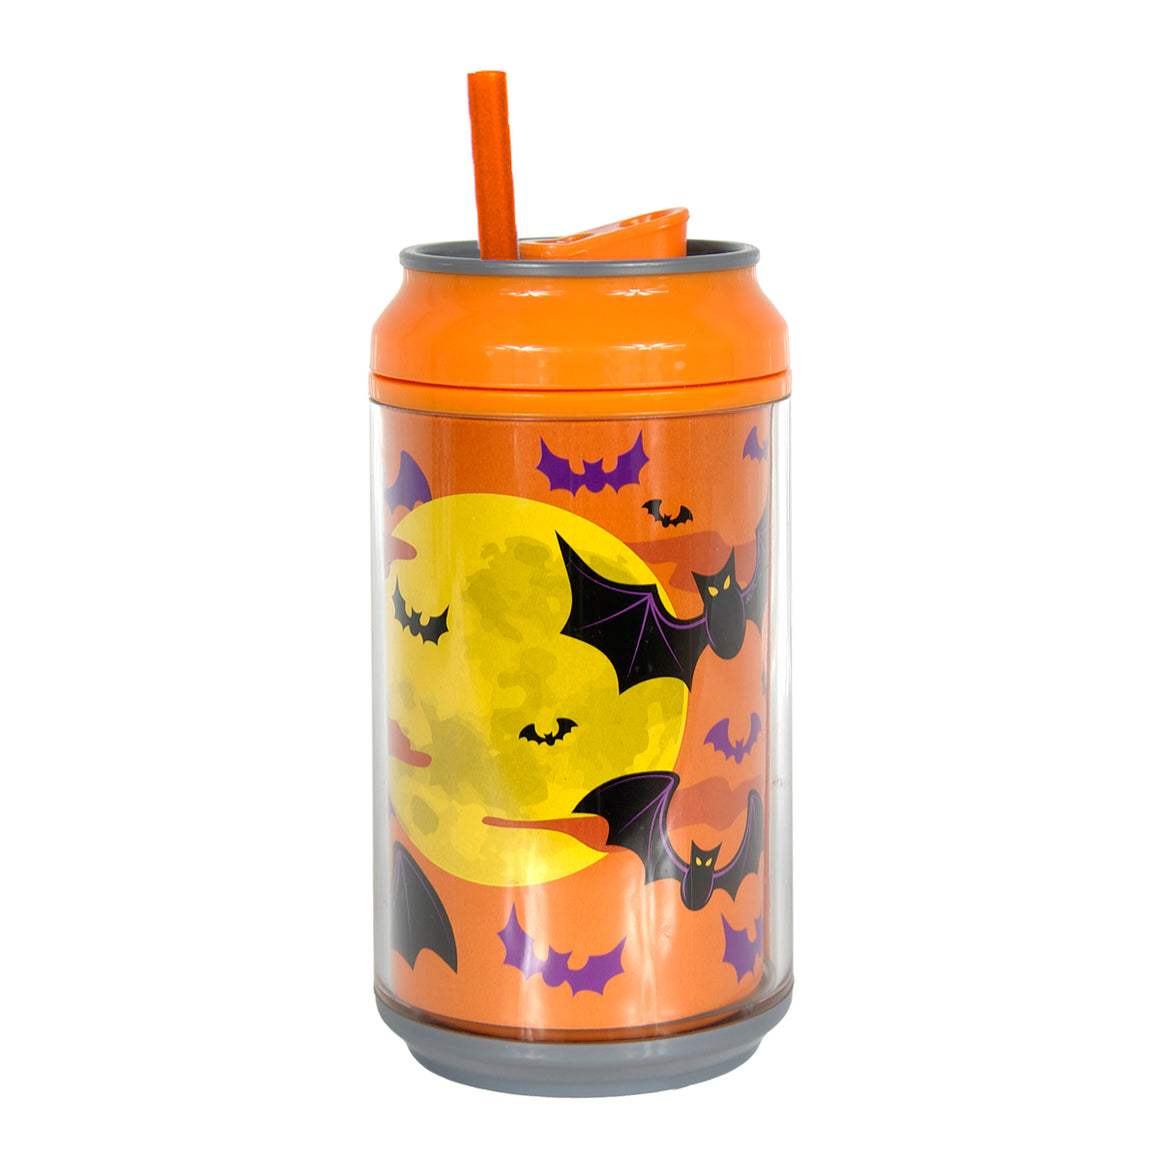 Green / Wicked Scary 12 Oz Halloween Coolgearcan (With Straw) at Cool Gear Halloween